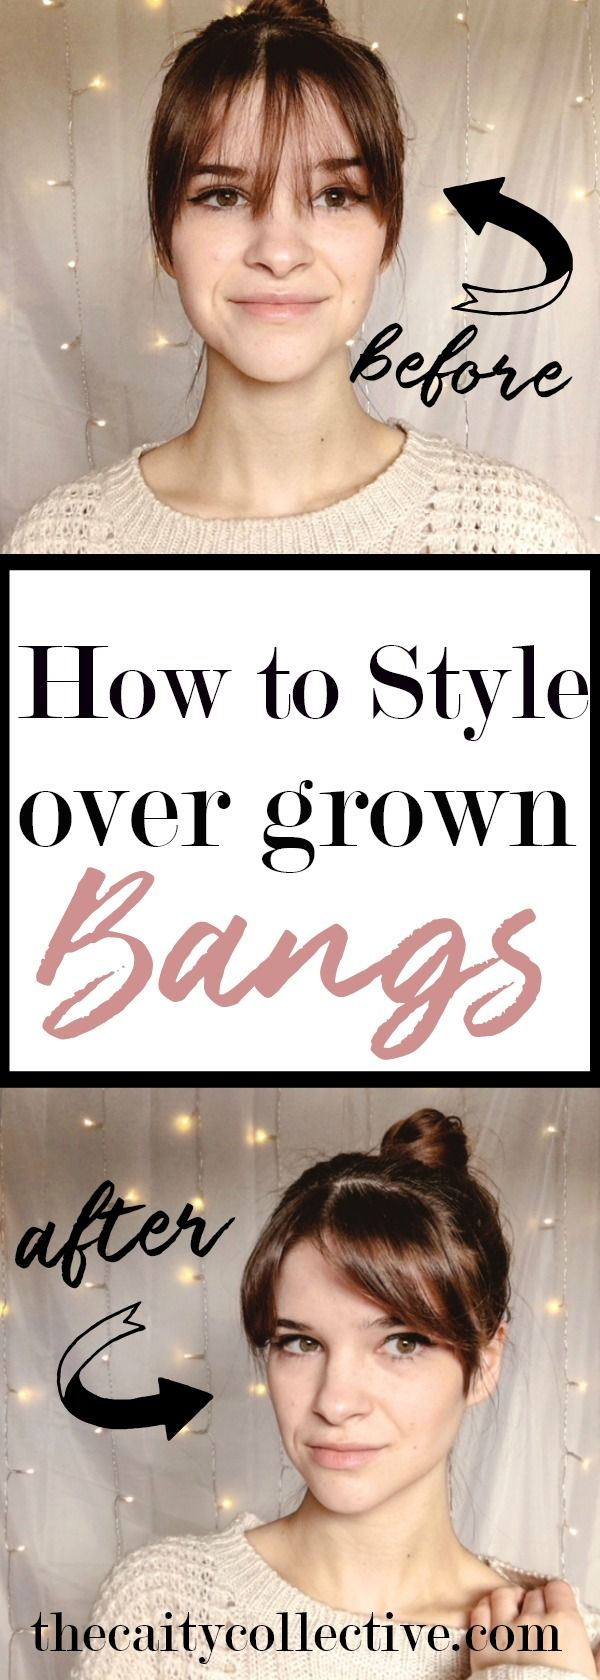 How to style over grown bangs | middle part bangs| overgrown bangs hairstyles  | styling over grown bangs